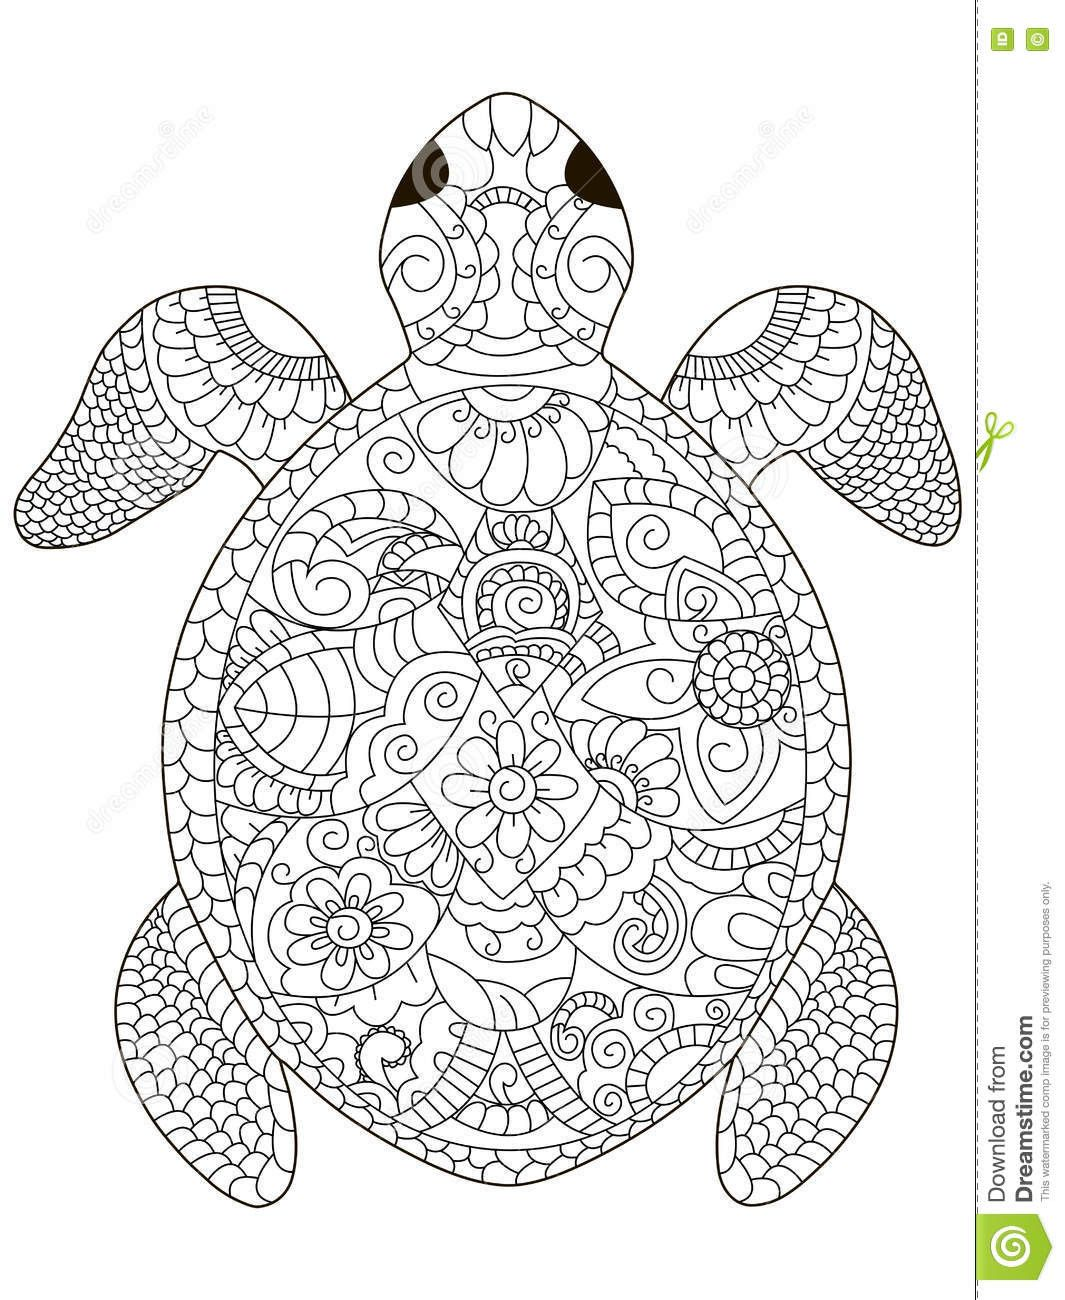 Green Turtle Coloring Pages Portraits